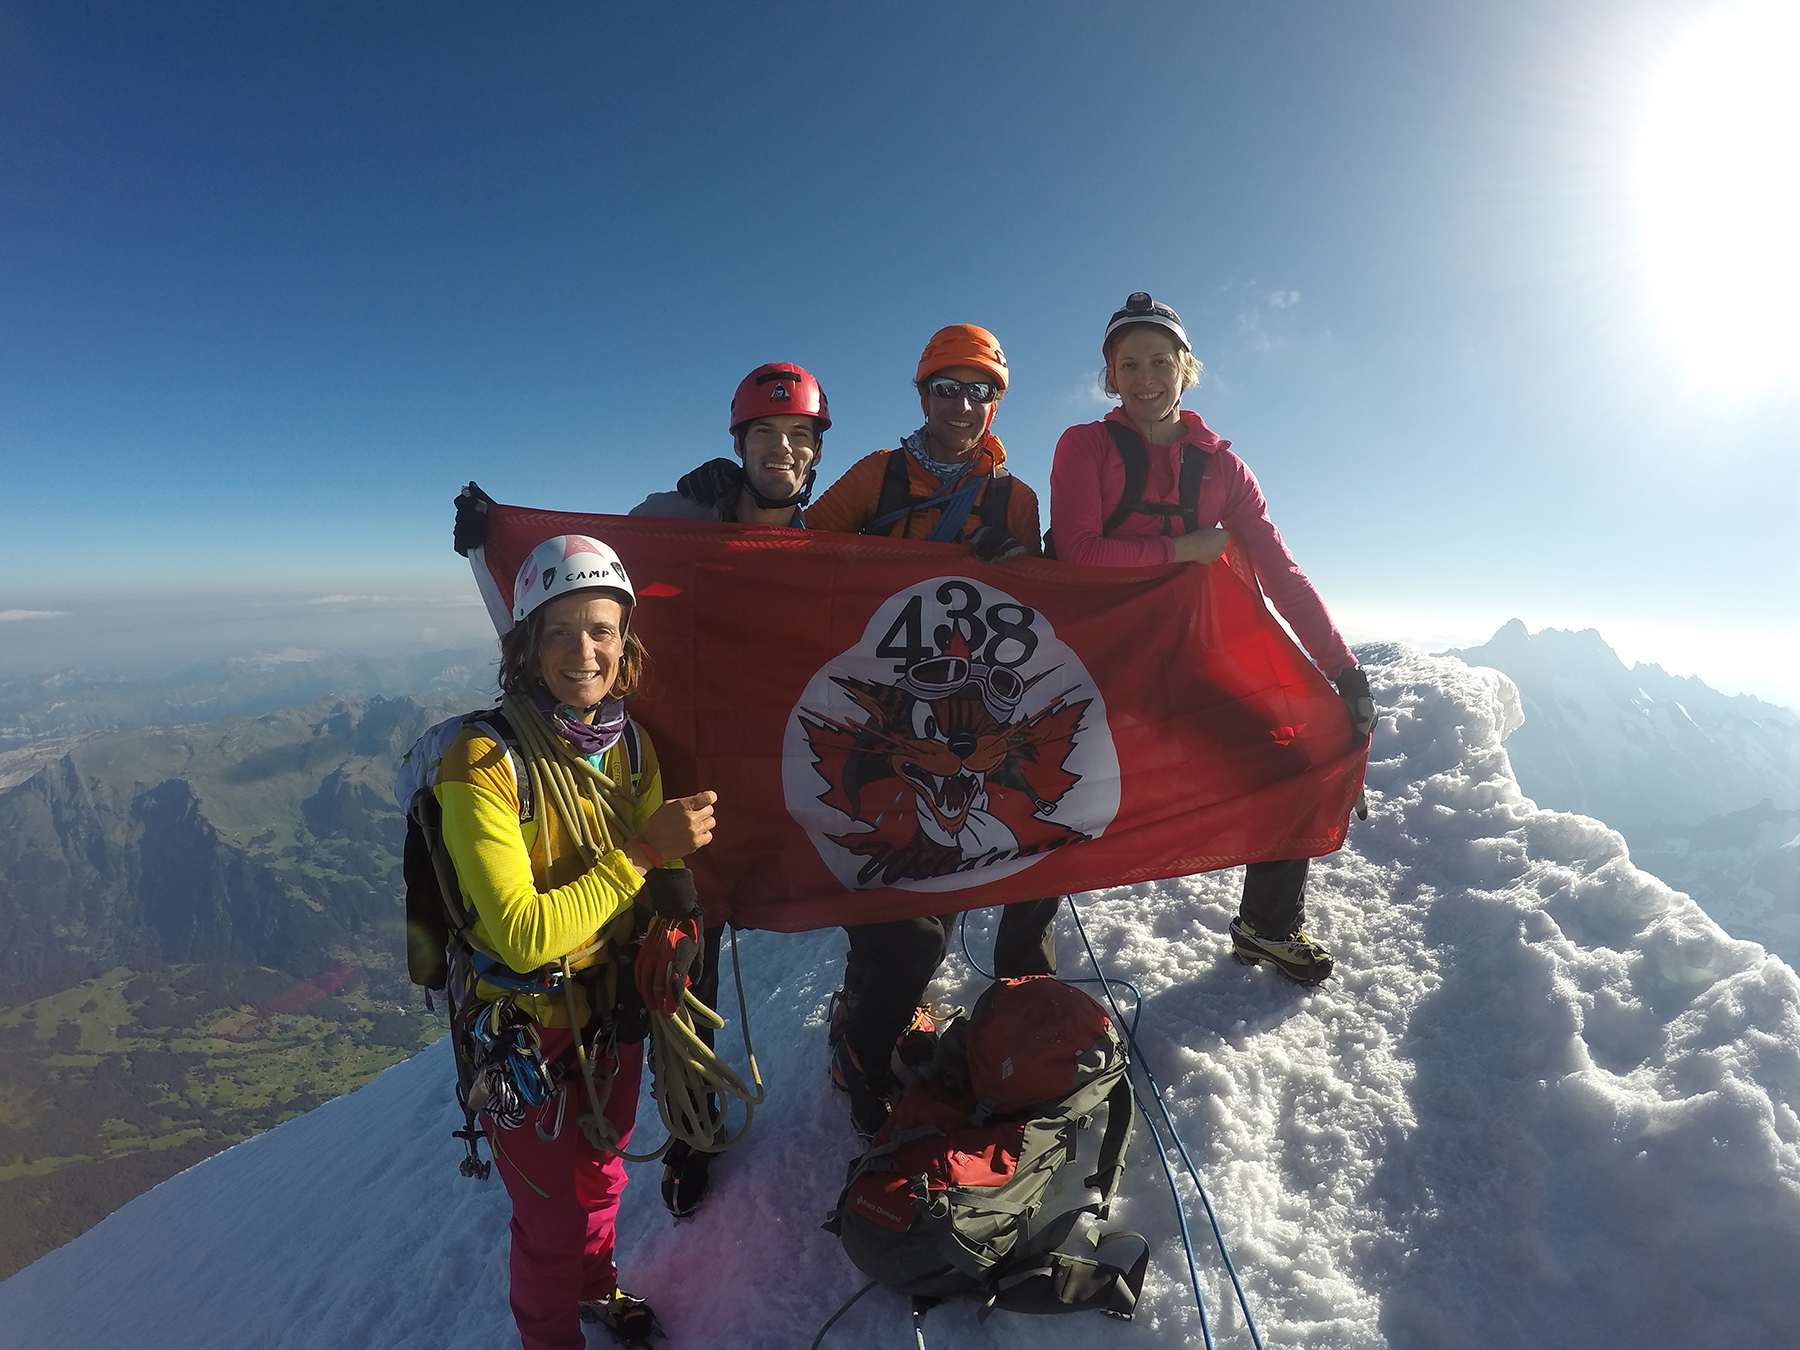 Four climbers display a flag on the summit of a mountain.